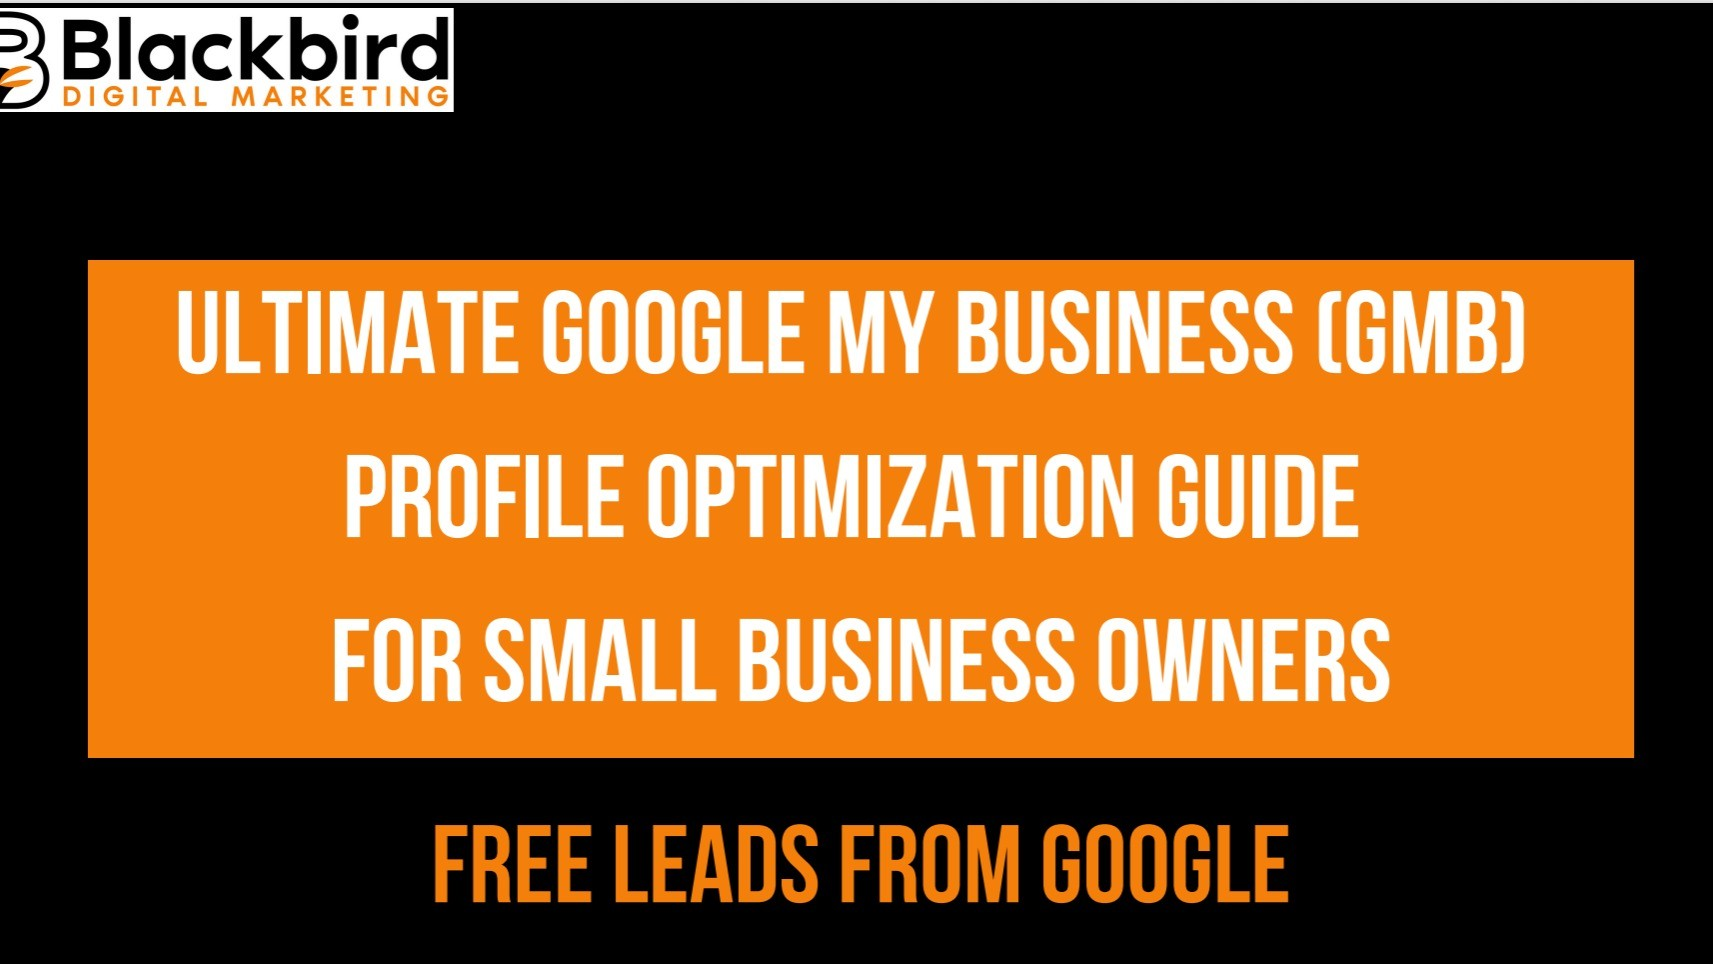 AppSumo Deal for Ultimate Google My Business (GMB) Profile Optimization Guide